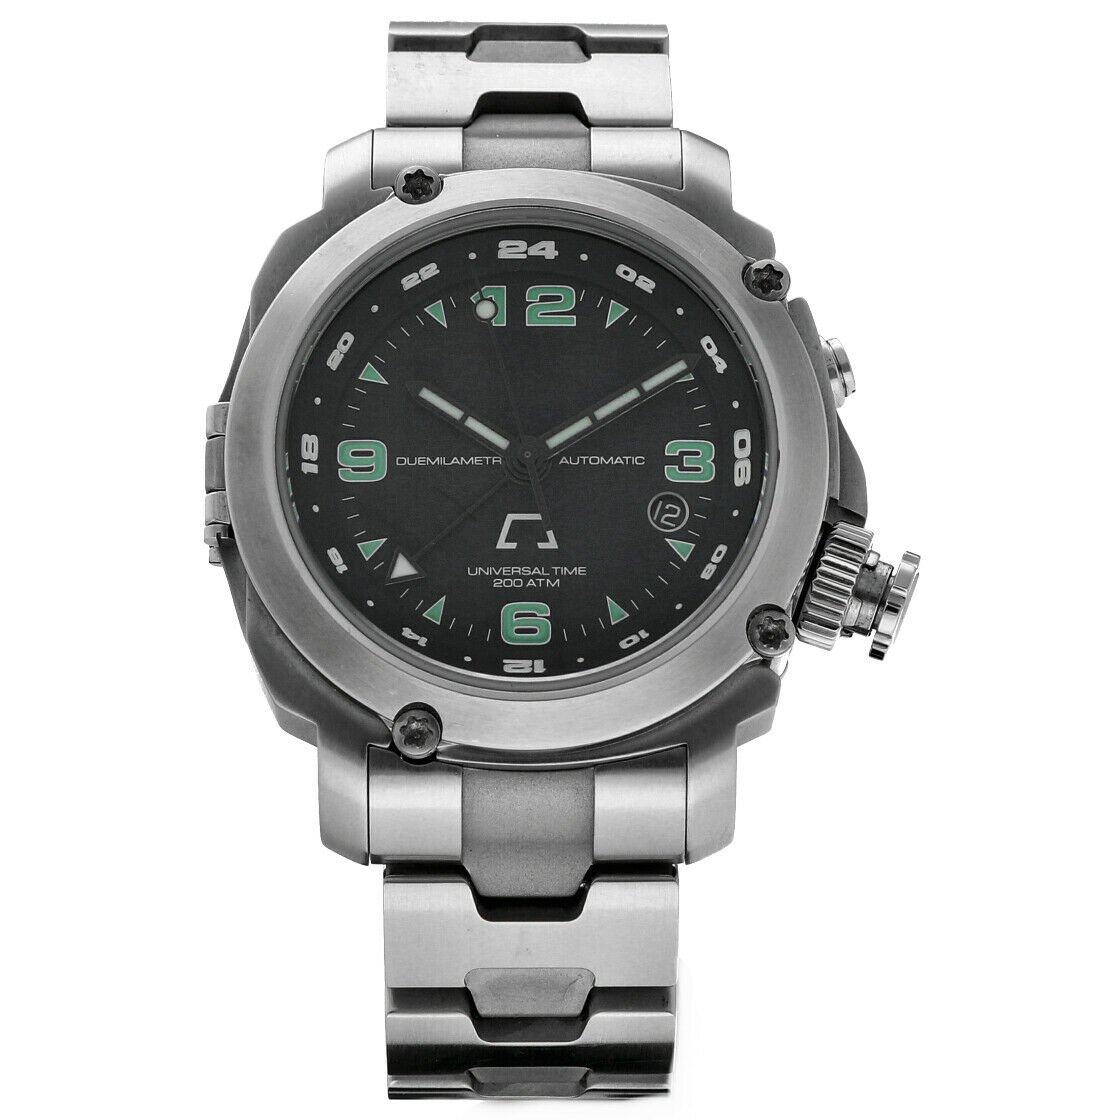 Anonimo Universal Time 6001 Professional GMT Steel 44mm Automatic Mens Watch 133445901887